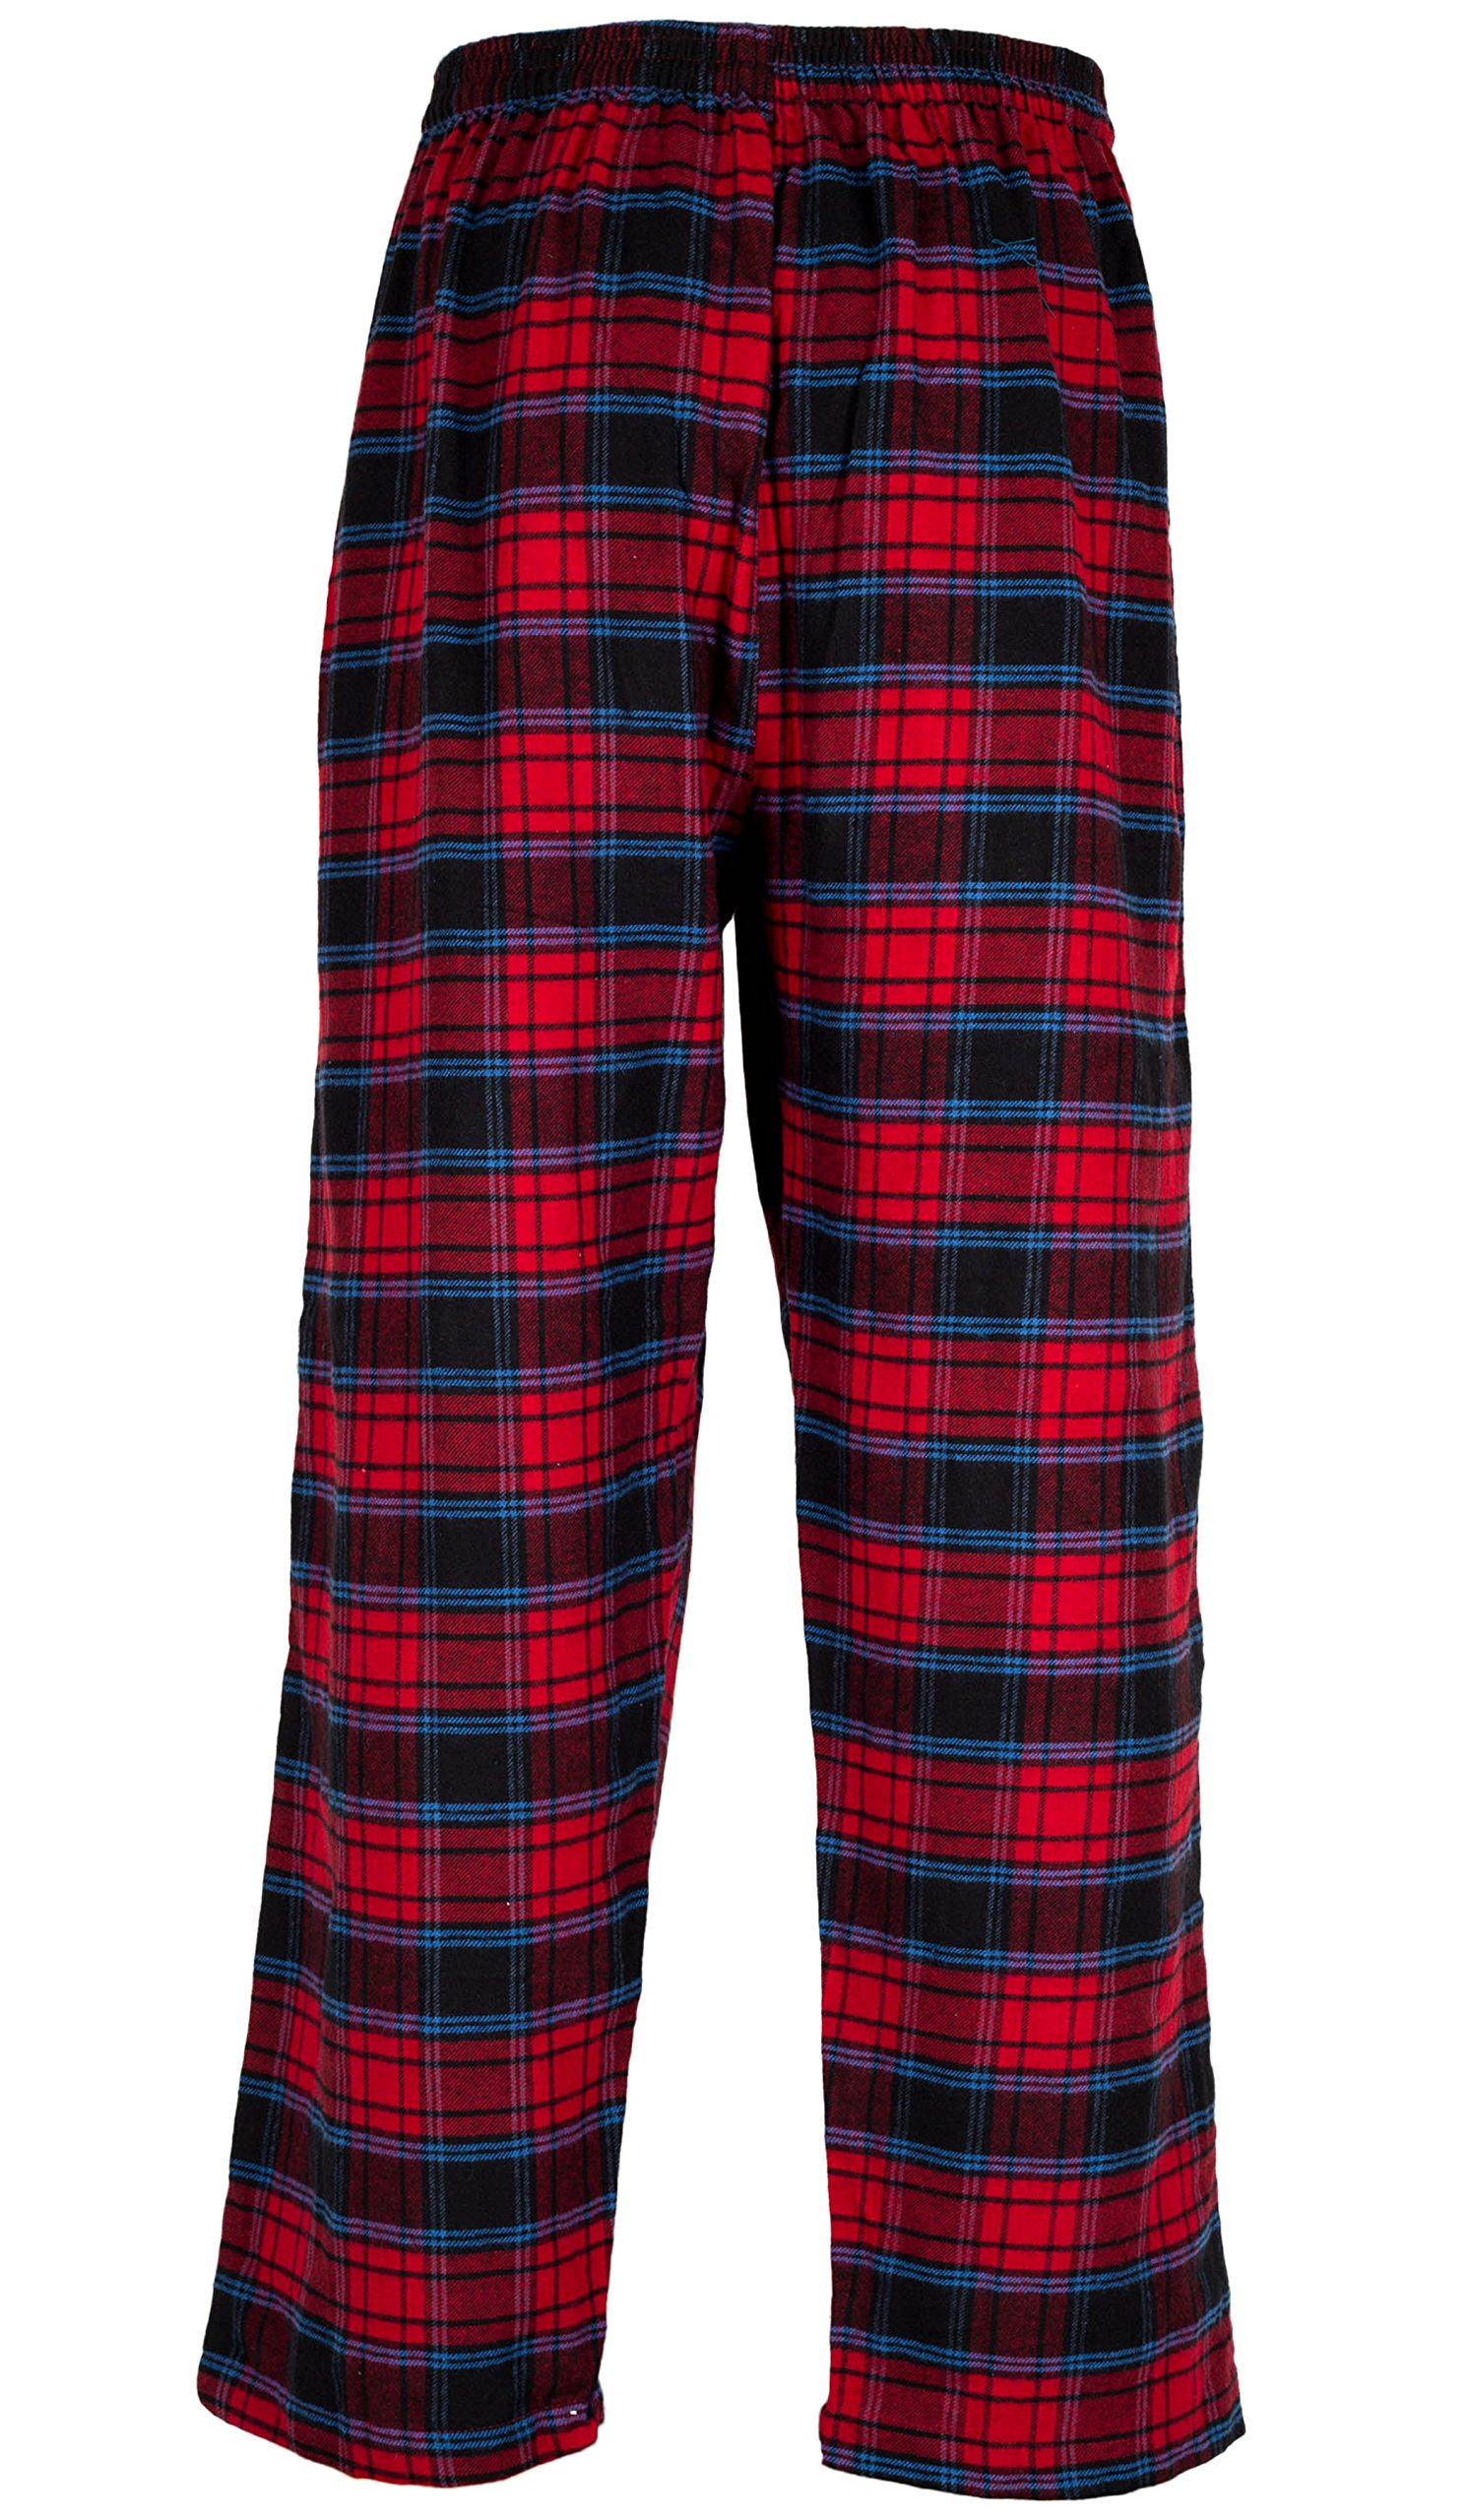 Andrew Scott Men's 3 Pack Cotton Flannel Fleece Brush Pajama Sleep & Lounge Pants (XL/40-42, 3 Pack - Classic Flannel Assorted Plaids) by Andrew Scott (Image #5)